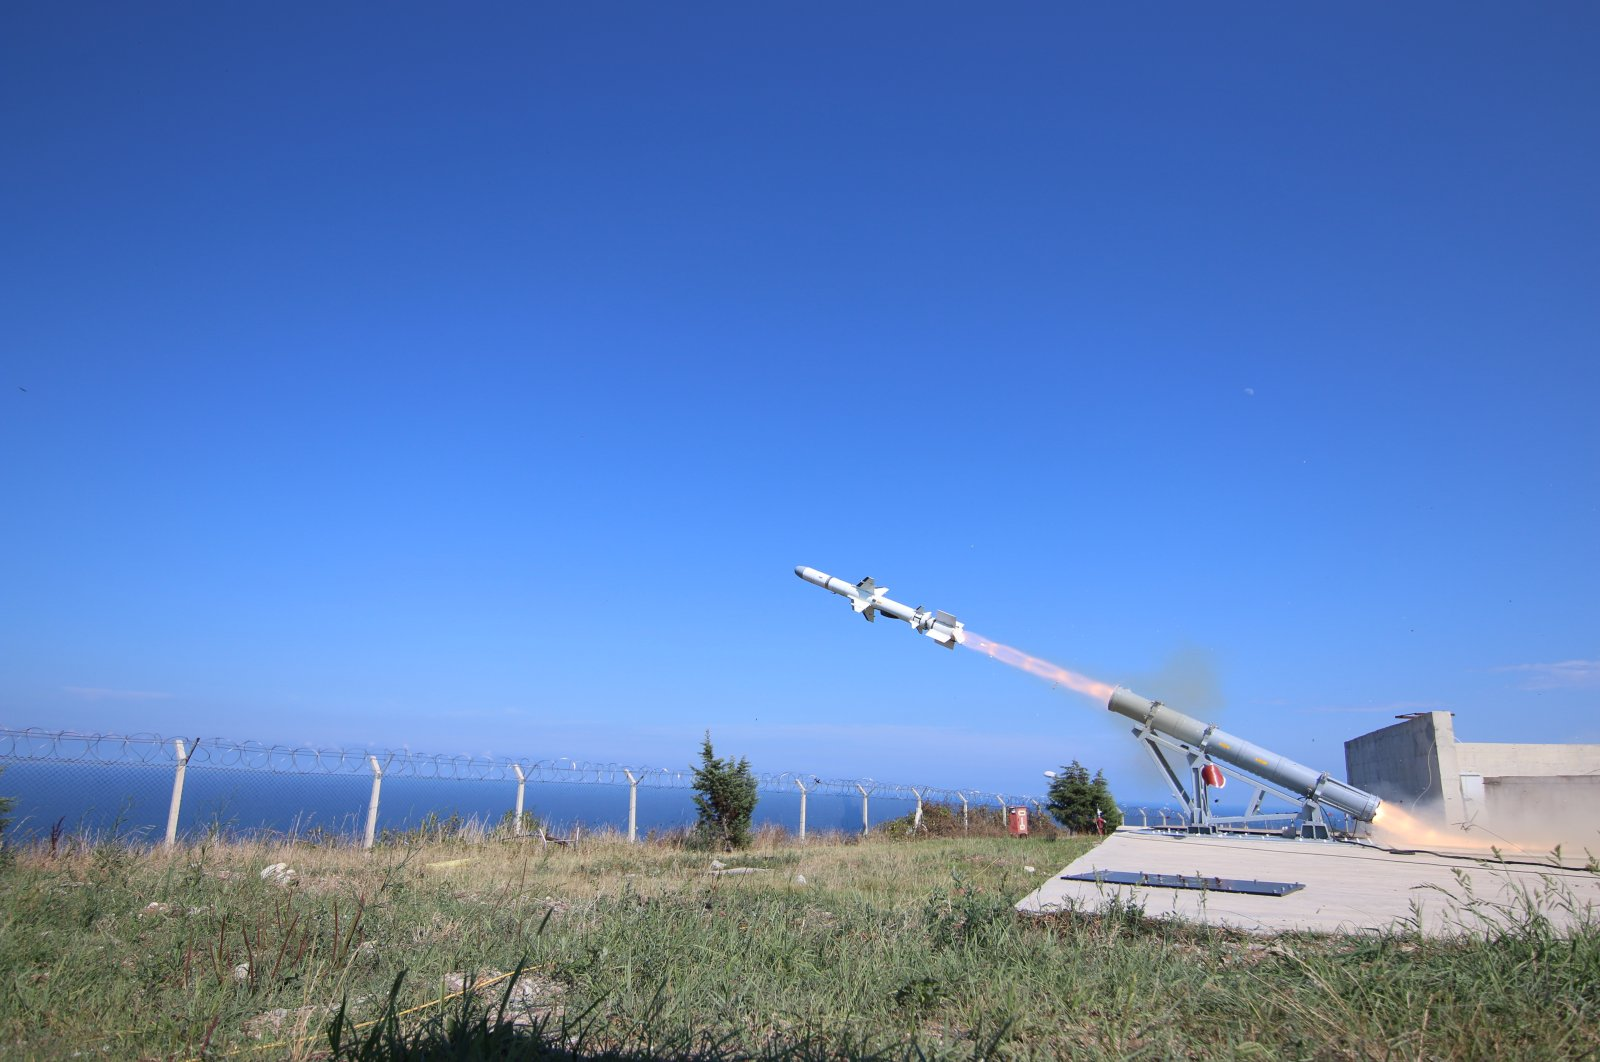 The maritime missile Atmaca is tested in Turkey's northernmost province, Sinop, July 1, 2020. (Roketsan via AA)